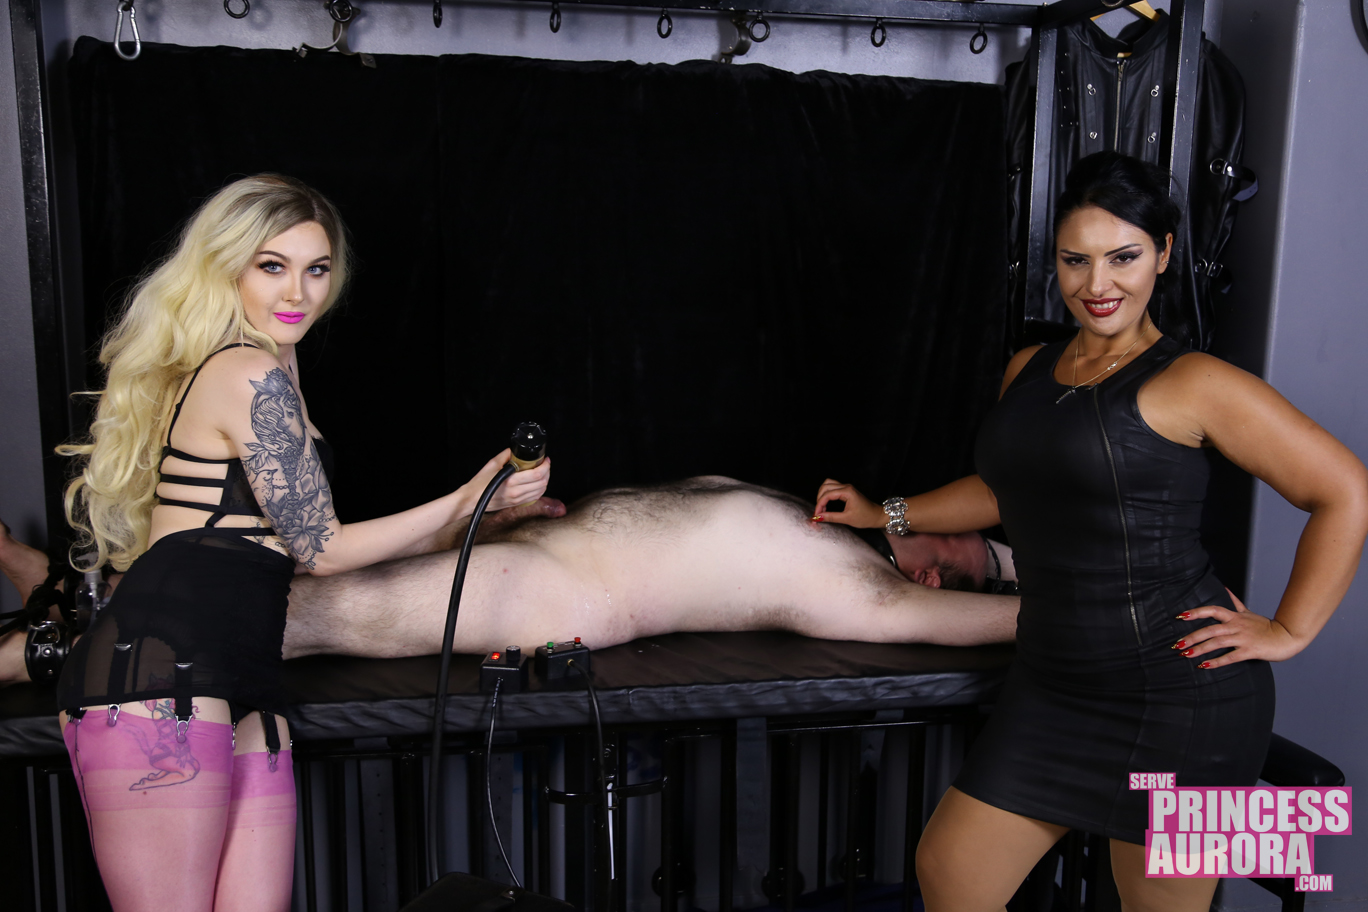 Princess Aurora & Mistress Ezada